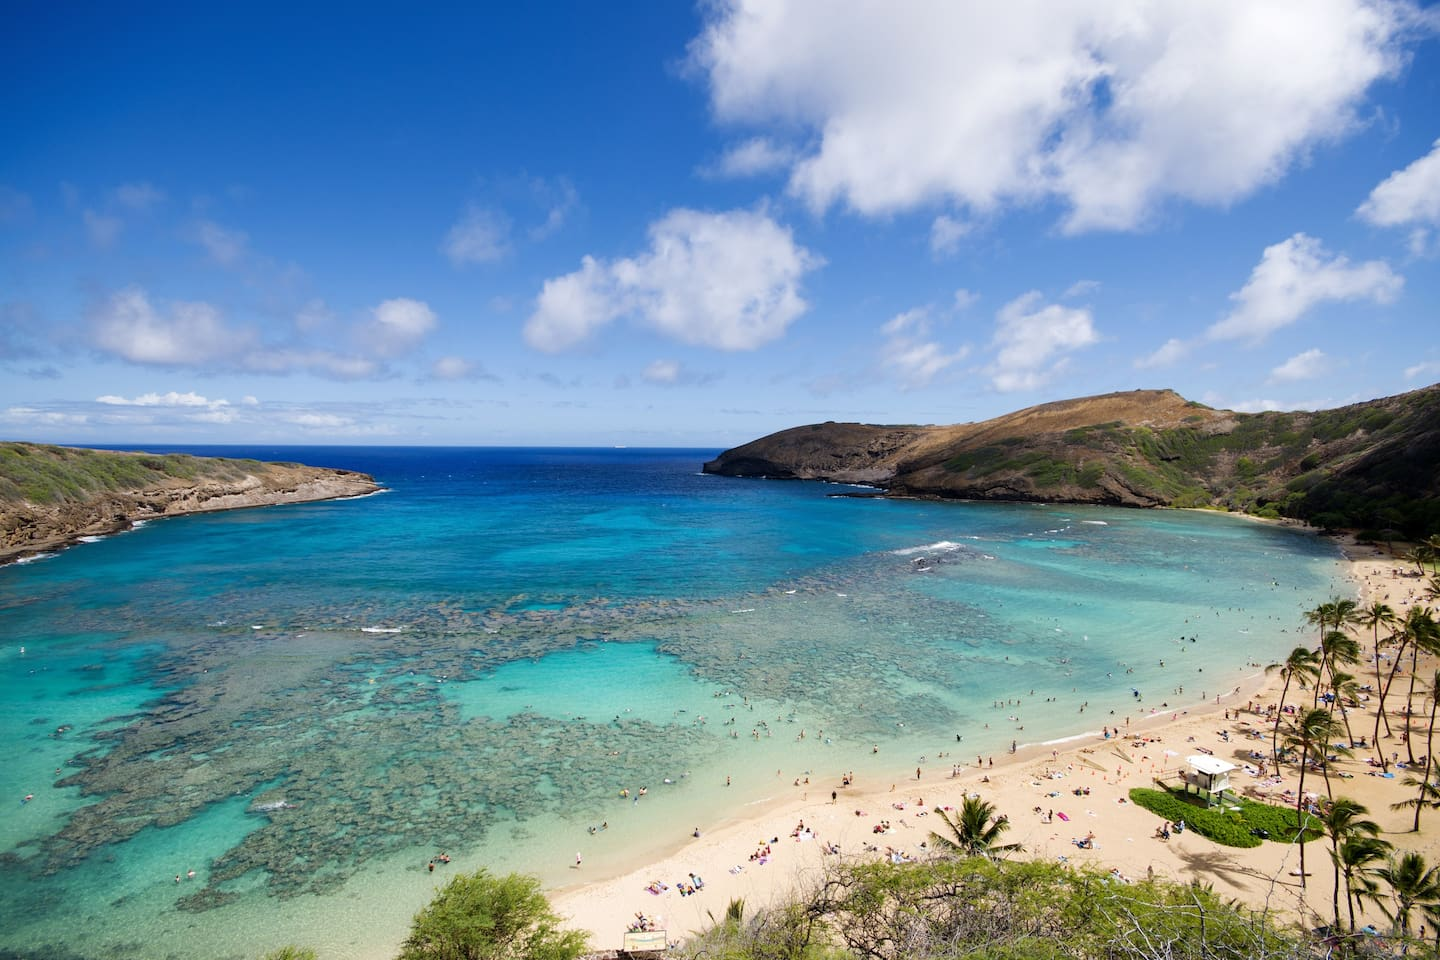 Hanauma Bay a delightful place to snorkel just 2 minutes away by car.